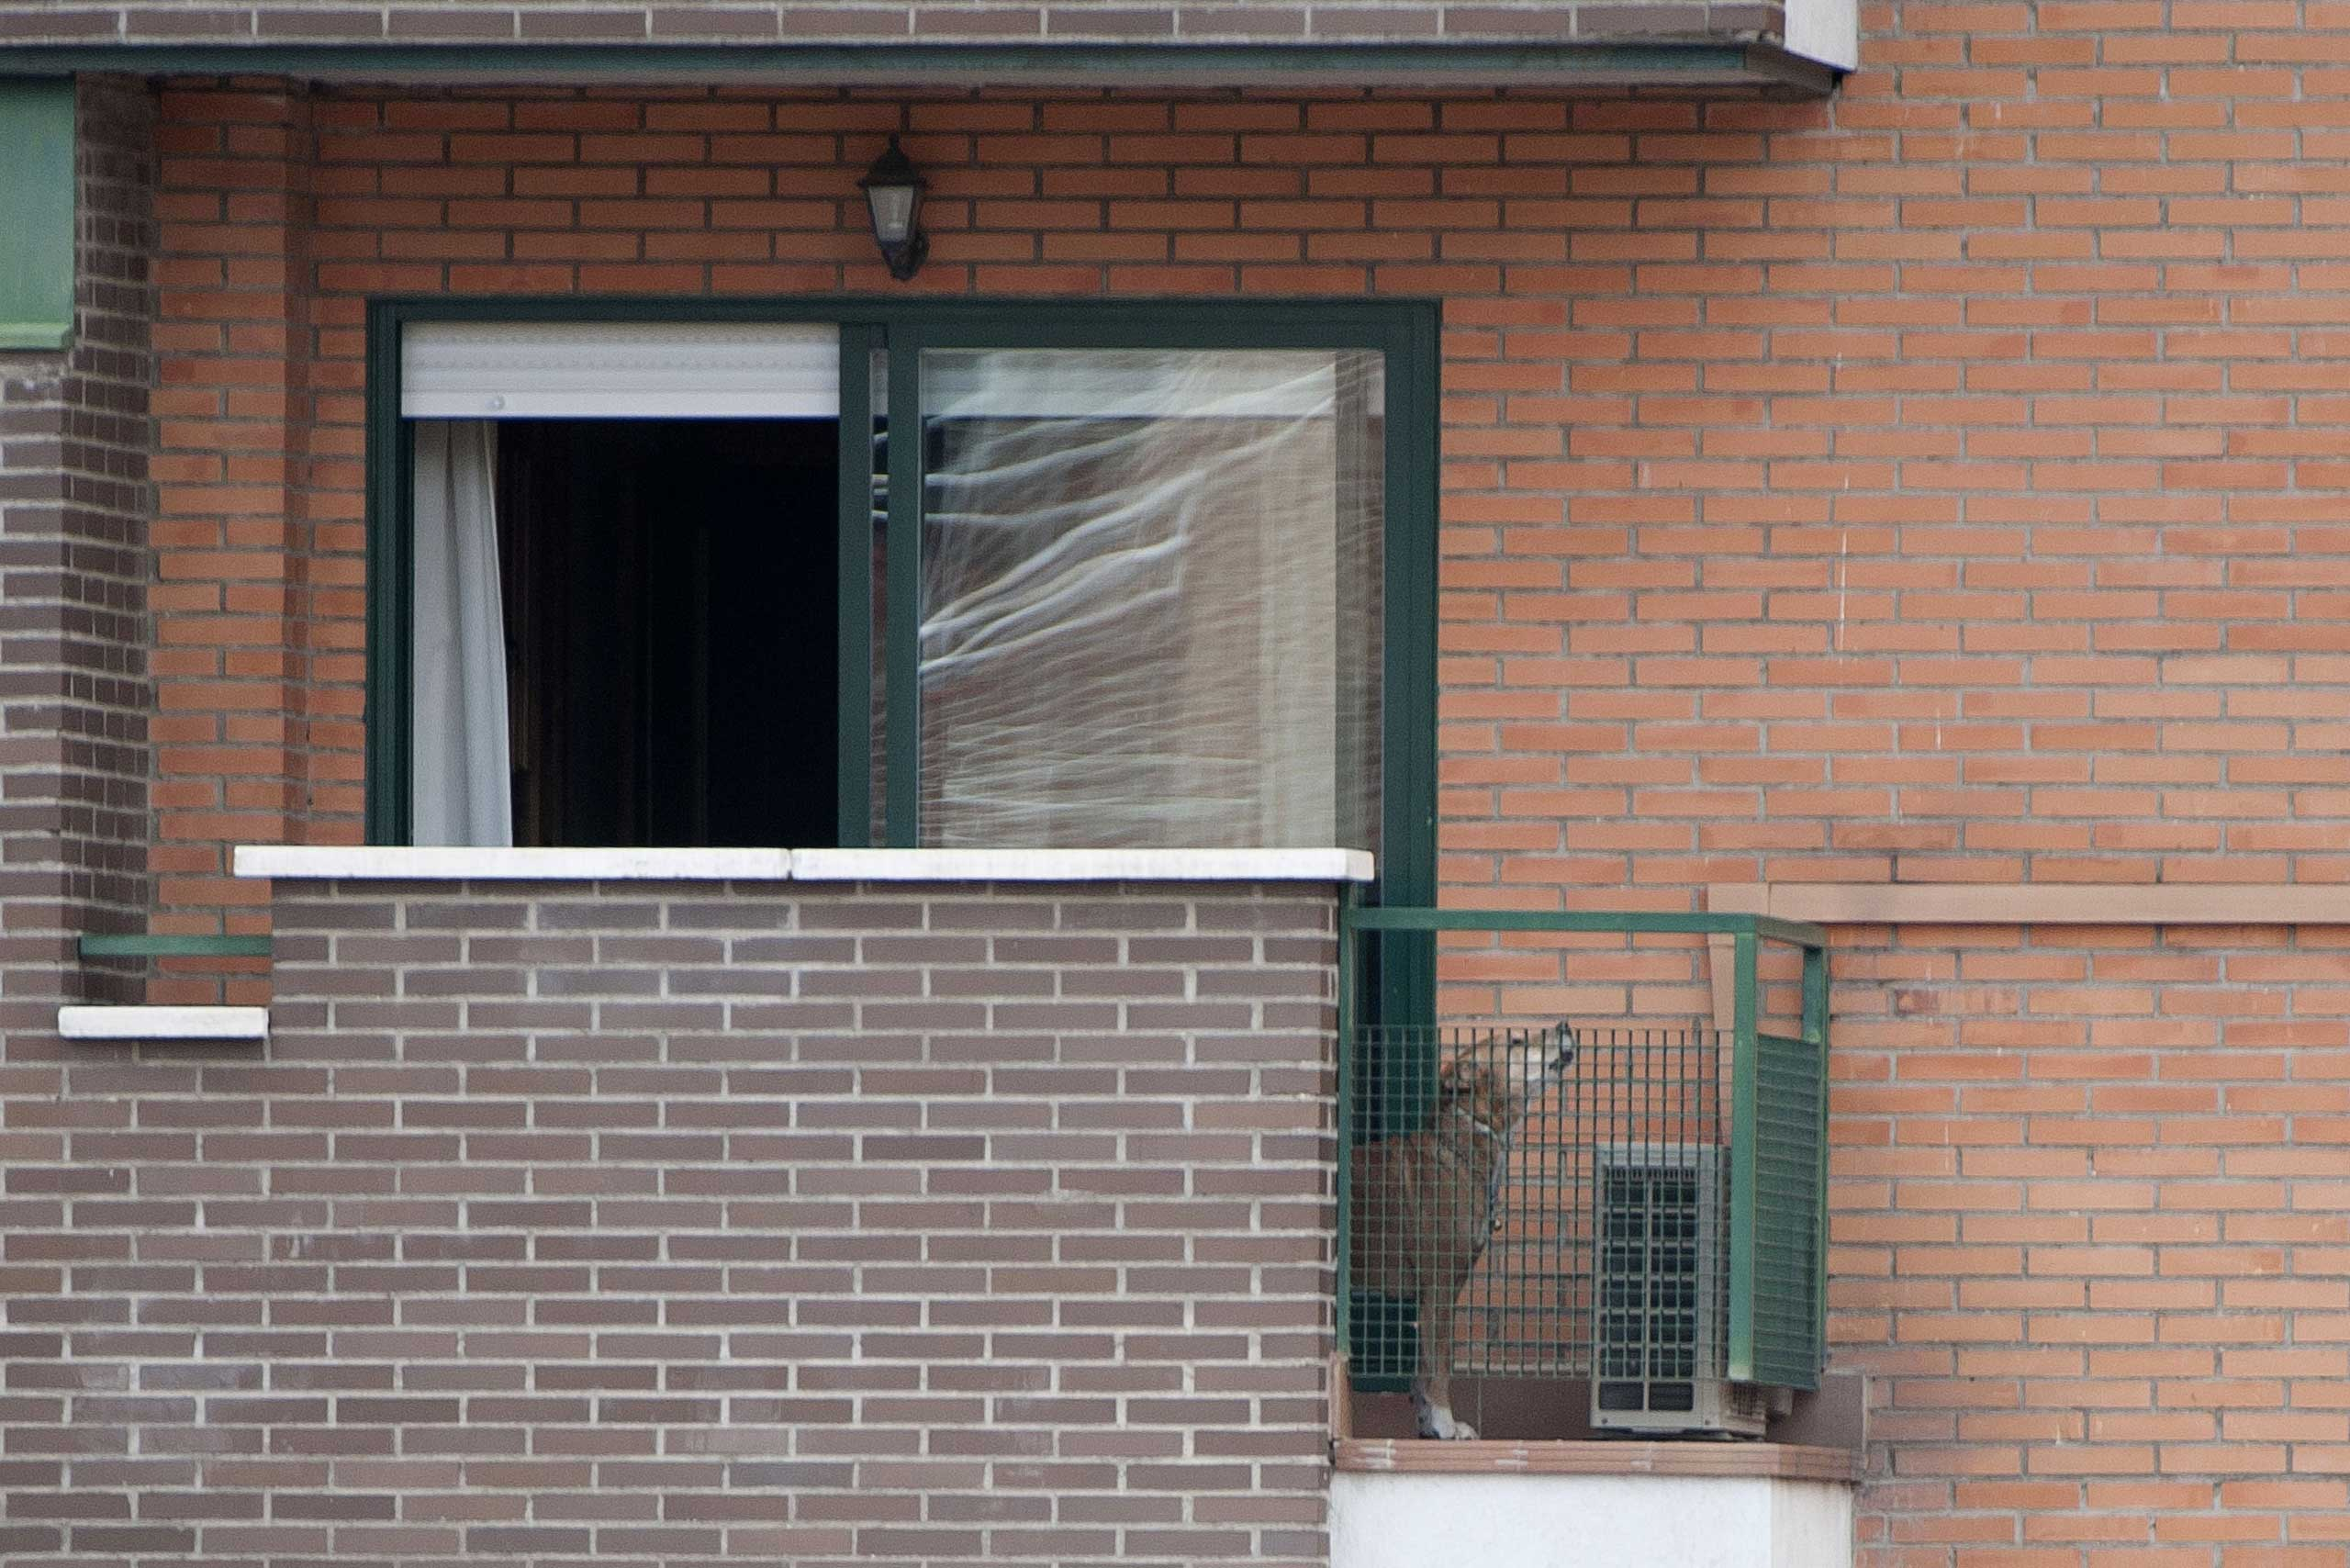 Oct. 8, 2014. Excalibur, the dog of Teresa, a Spanish nurse, and her husband Javier Limon, stands on their balcony in Alcorcon after they were admitted Sunday and Monday respectively to a Madrid hospital fearing infection with the deadly Ebola virus.